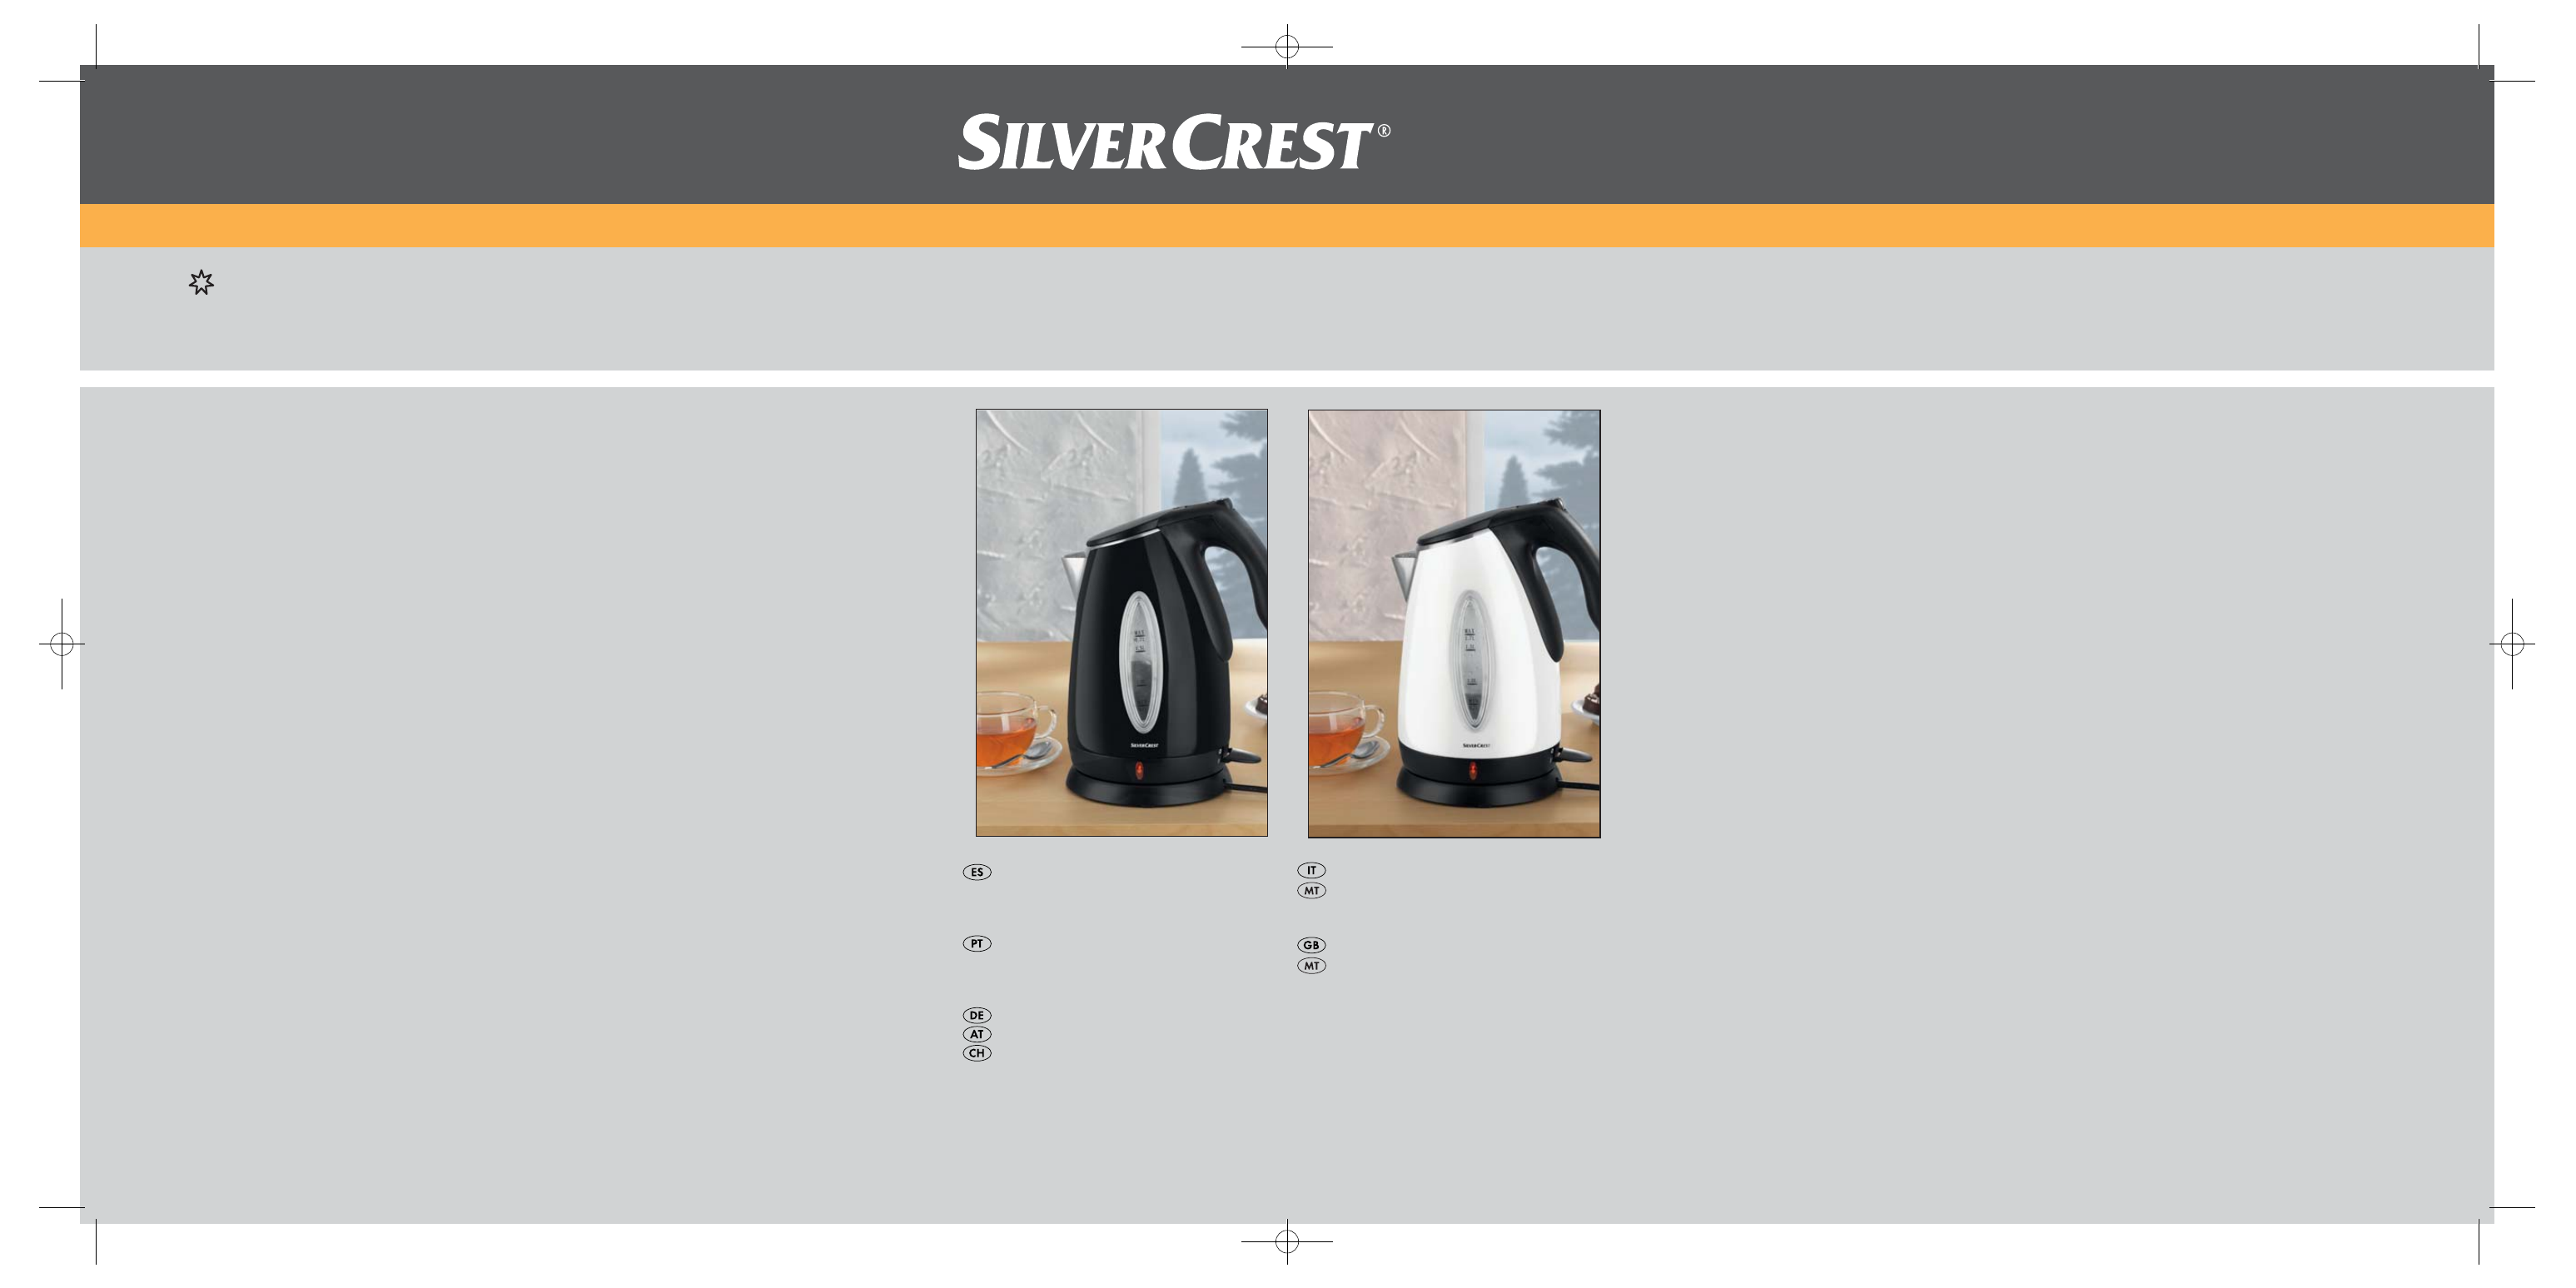 Silvercrest Swks 2400 A1 User Manual 31 Pages Also For Swkk 3000 A1